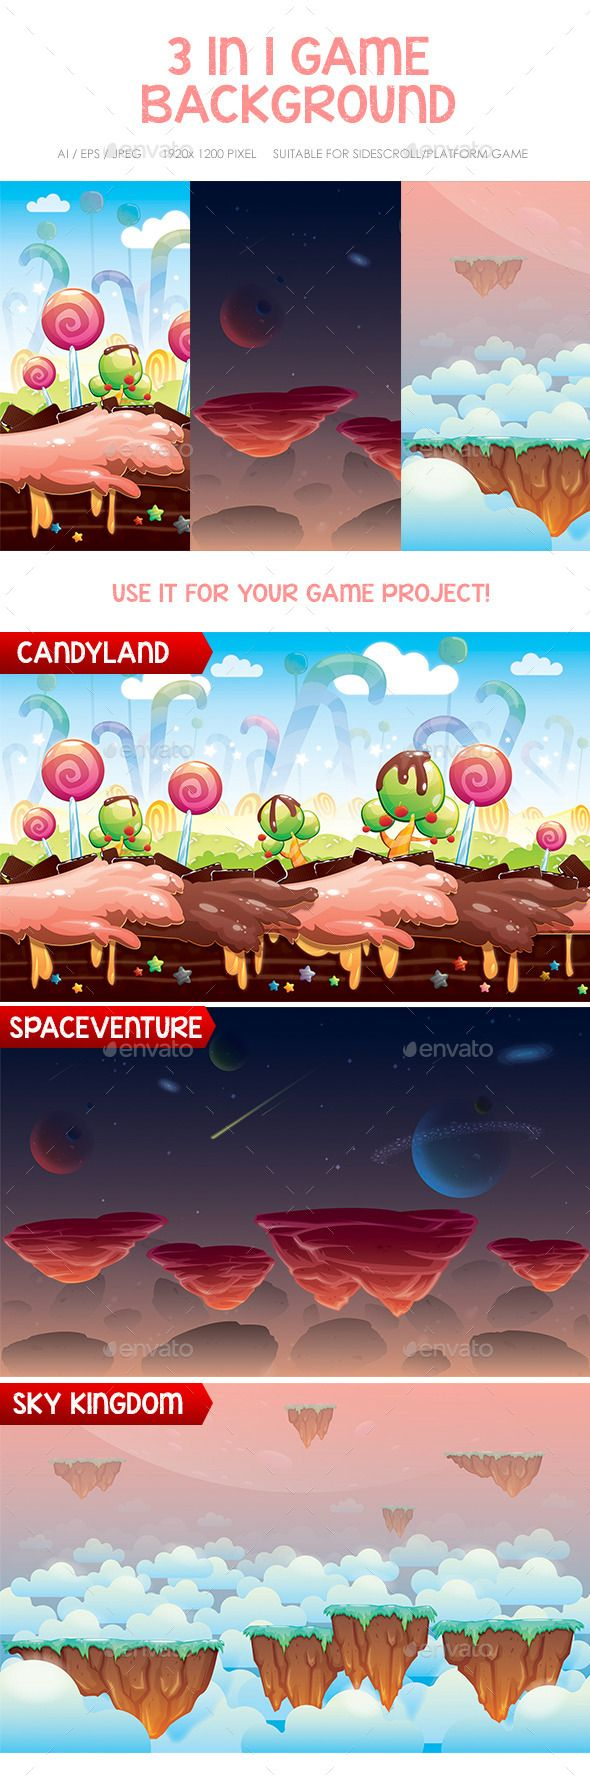 Space, Candy & Sky Game Background — Vector EPS #scrolling #cloud • Available here → https://graphicriver.net/item/space-candy-sky-game-background/12411218?ref=pxcr